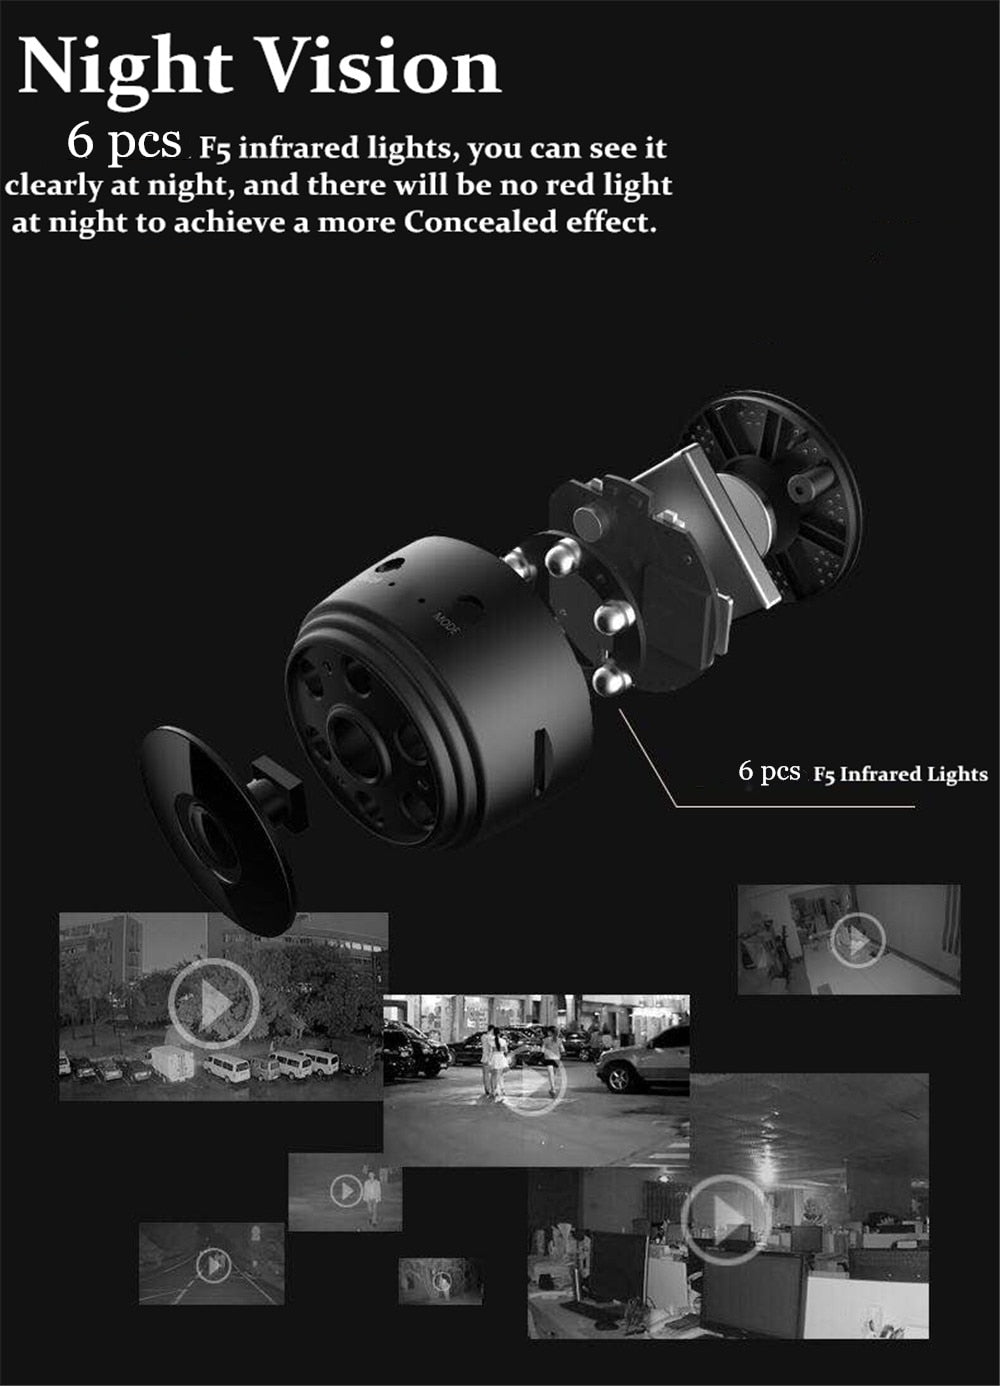 Mini Camera HD 1080P Sensor Night Vision Camcorder Motion DVR Micro Camera Sport DV Video small Camera Remote Monitor Phone App